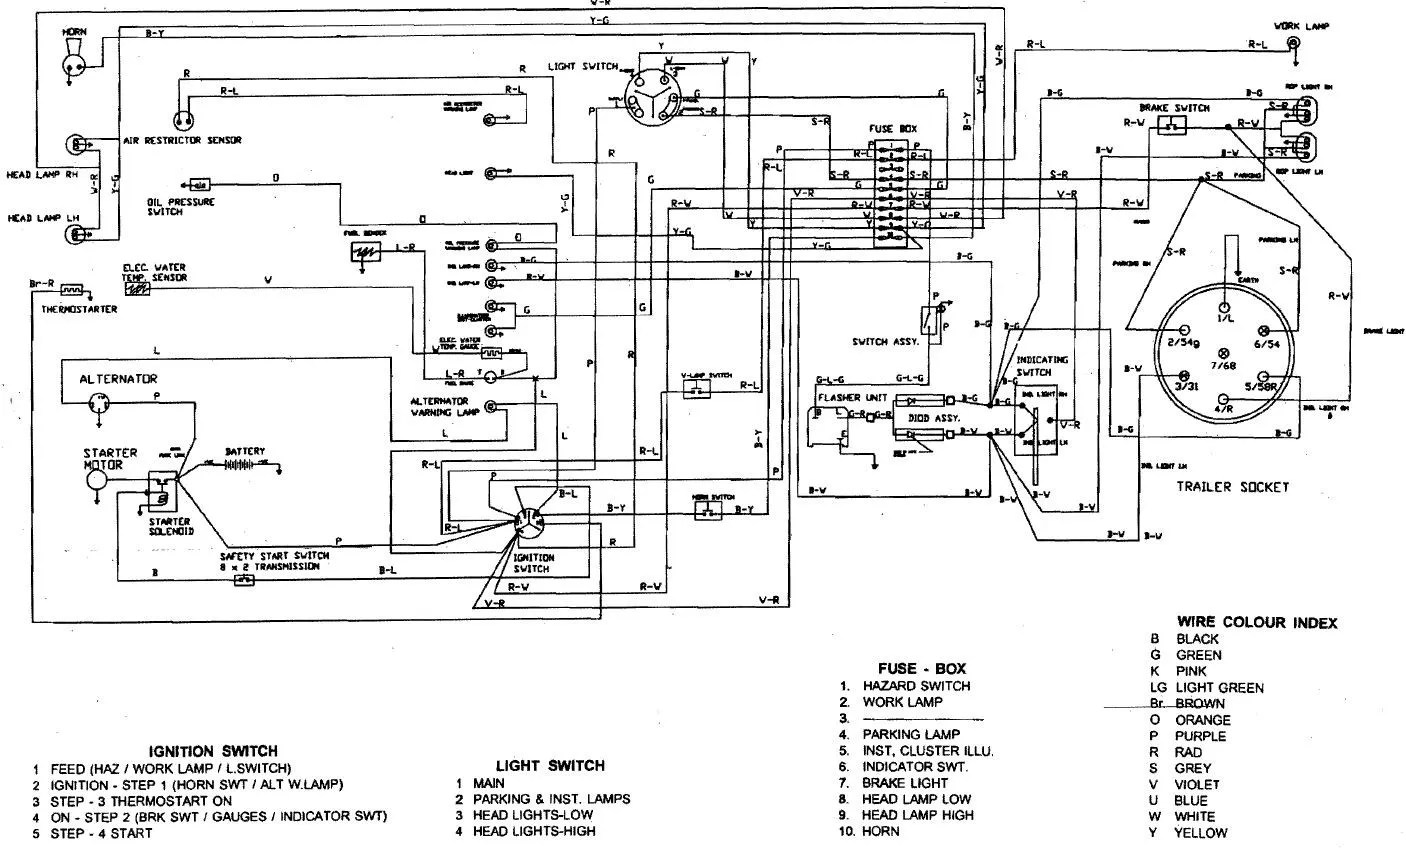 hight resolution of kubota l3010 wiring diagram my wiring diagramkubota l3010 wiring diagram wiring diagrams favorites kubota l3010 electrical